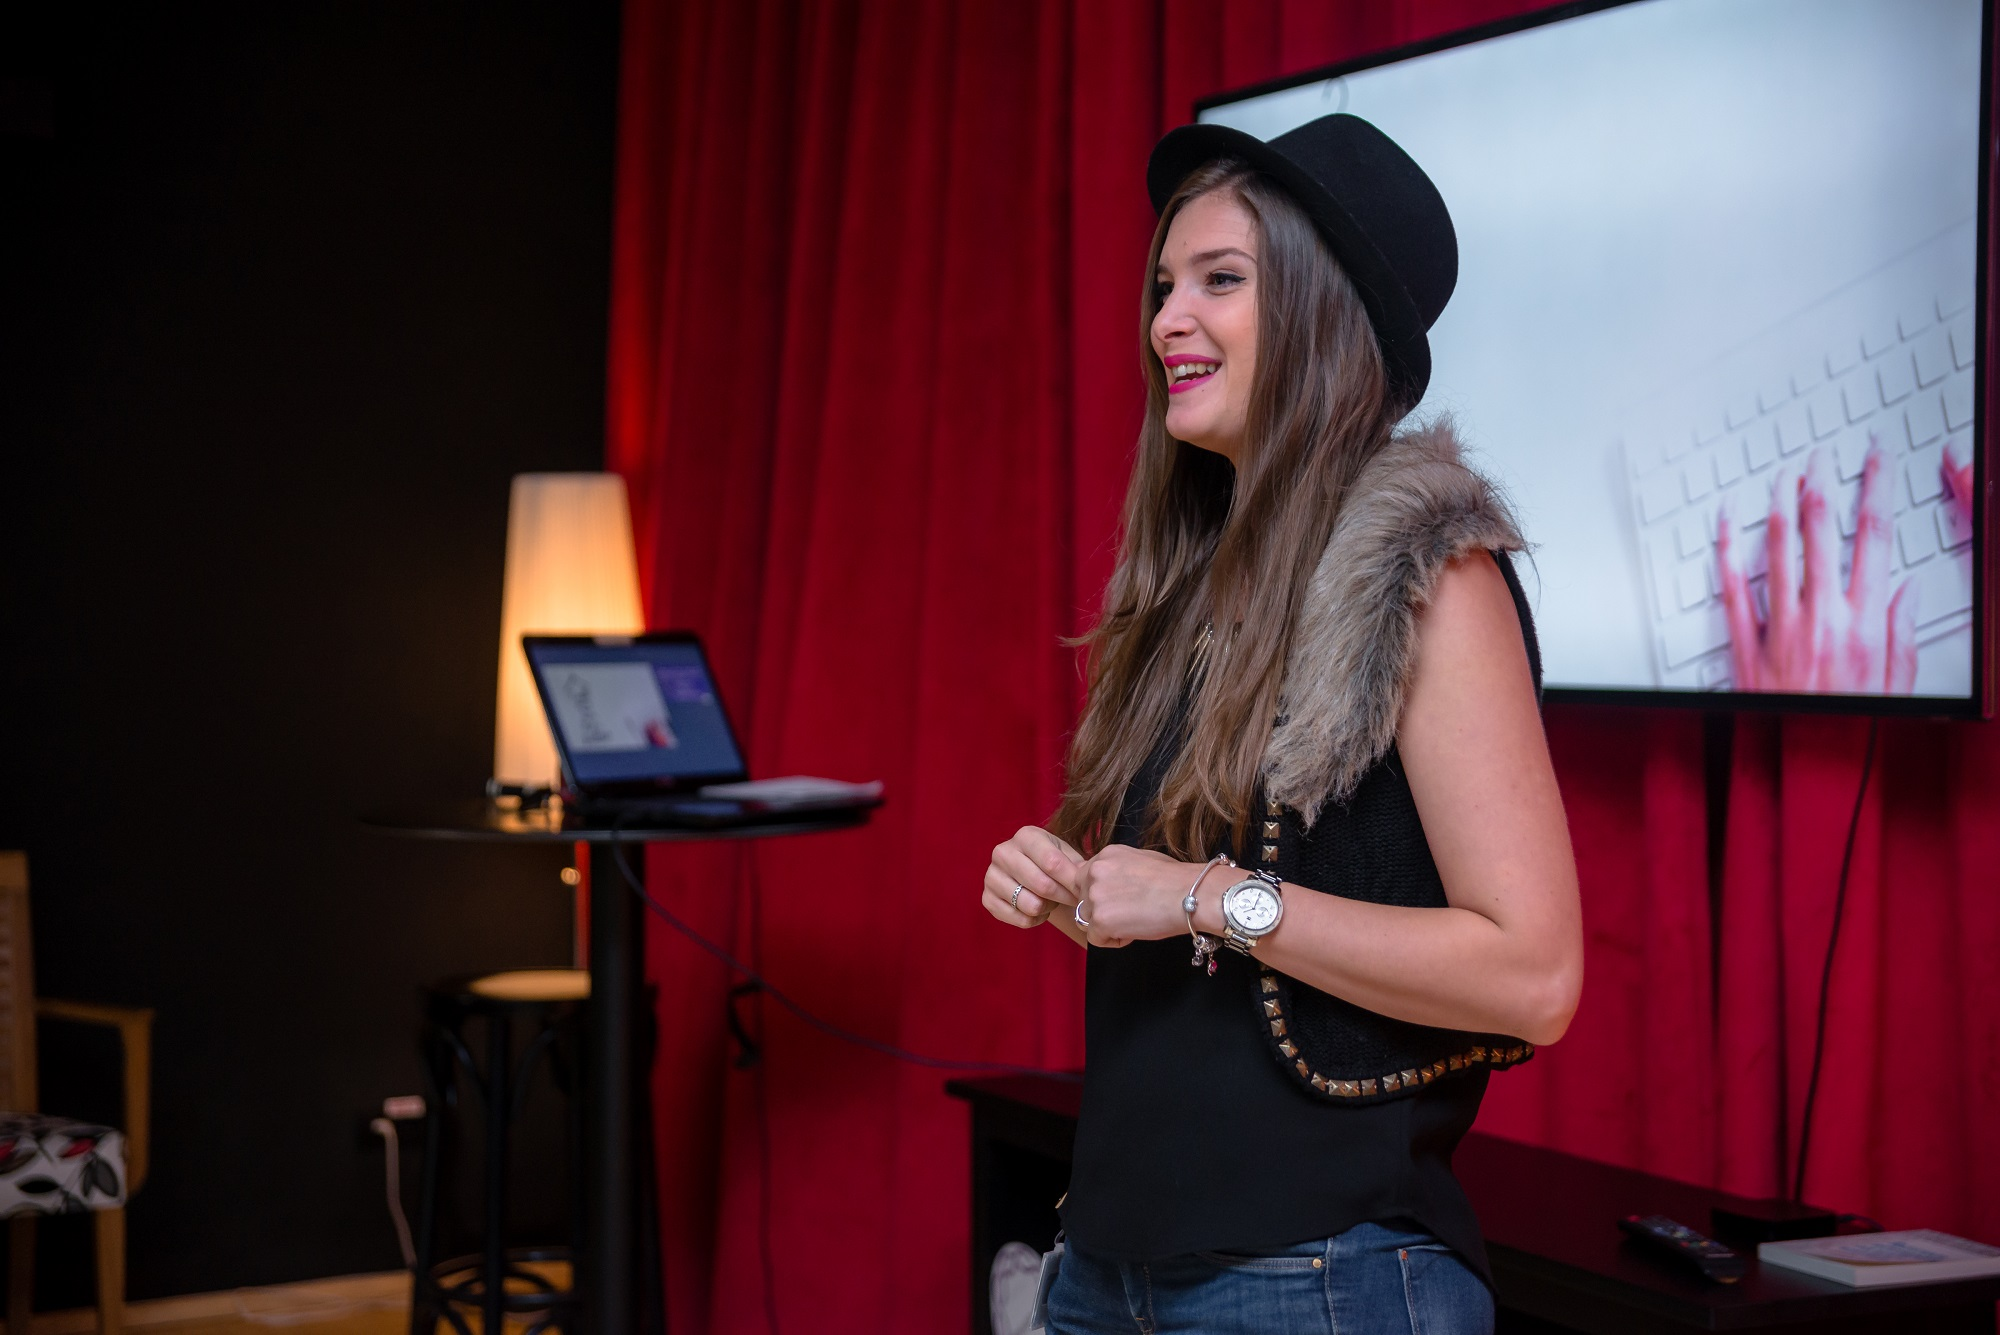 Infobest has launched the Romanian version of StylishCircle with a great event